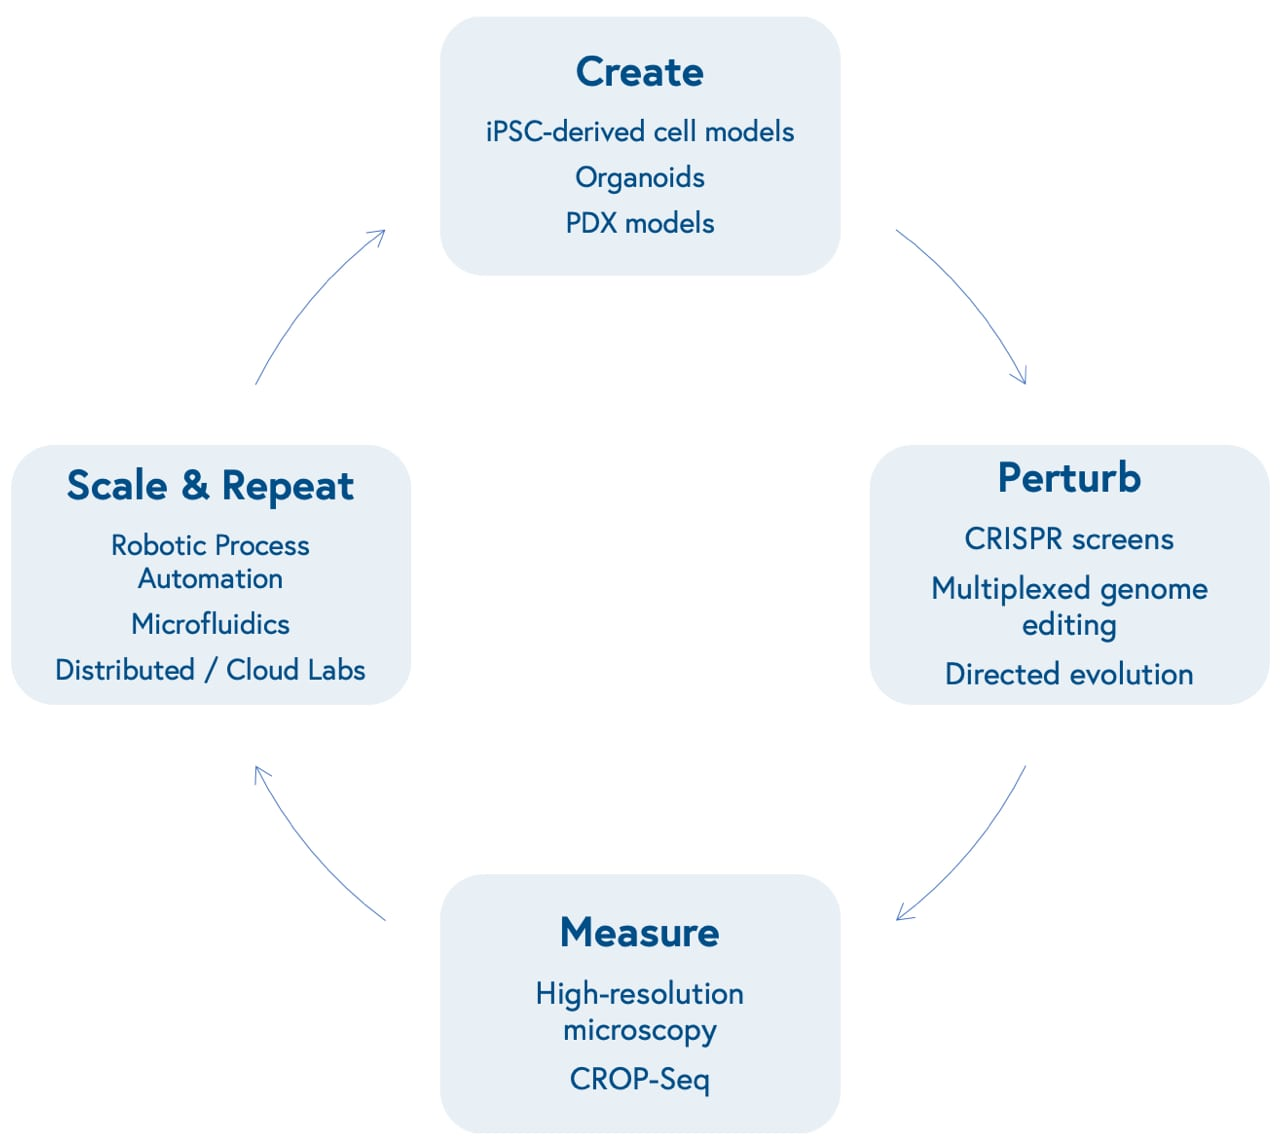 Info graphic displaying the cycle of Create, Perturb, Measure, and Scale & Repeat